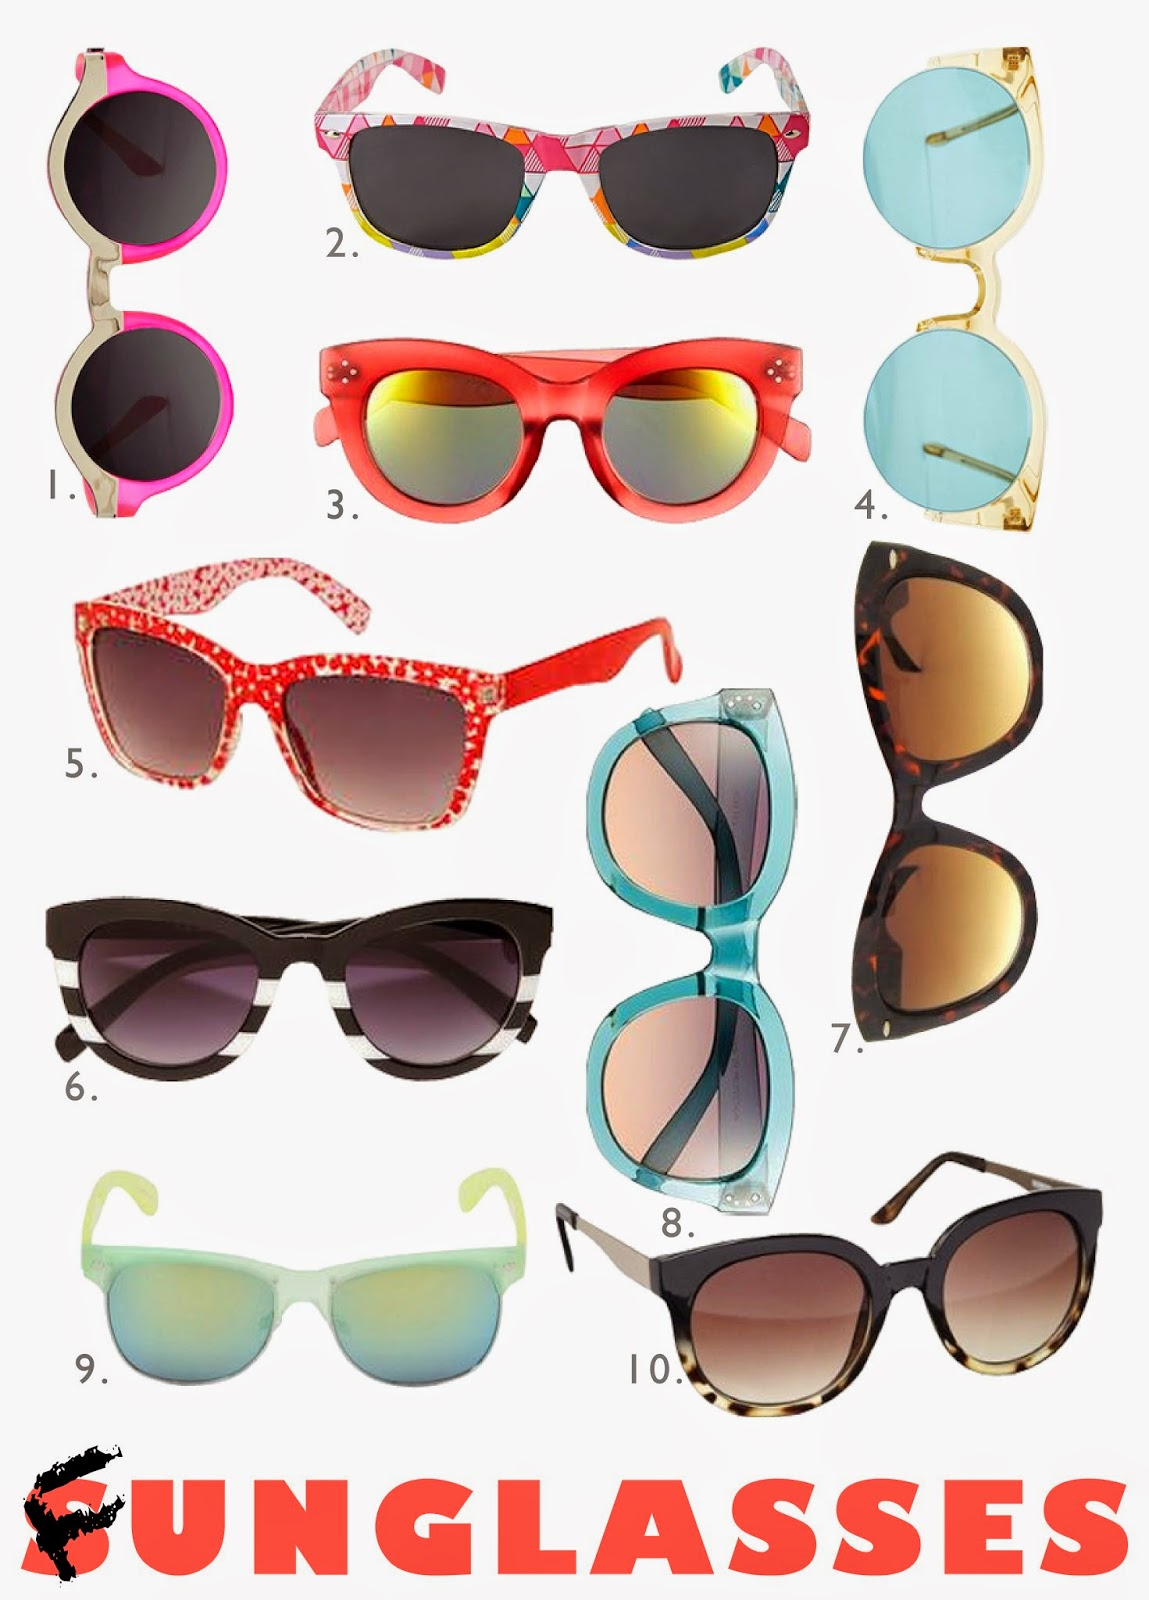 cute-sunglasses, shopping-for-sunglasses, sunglasses-under-$50, sunglasses-under-fifty-dollars, printed-sunglasses, cheap-sunglasses, bright-sunglasses